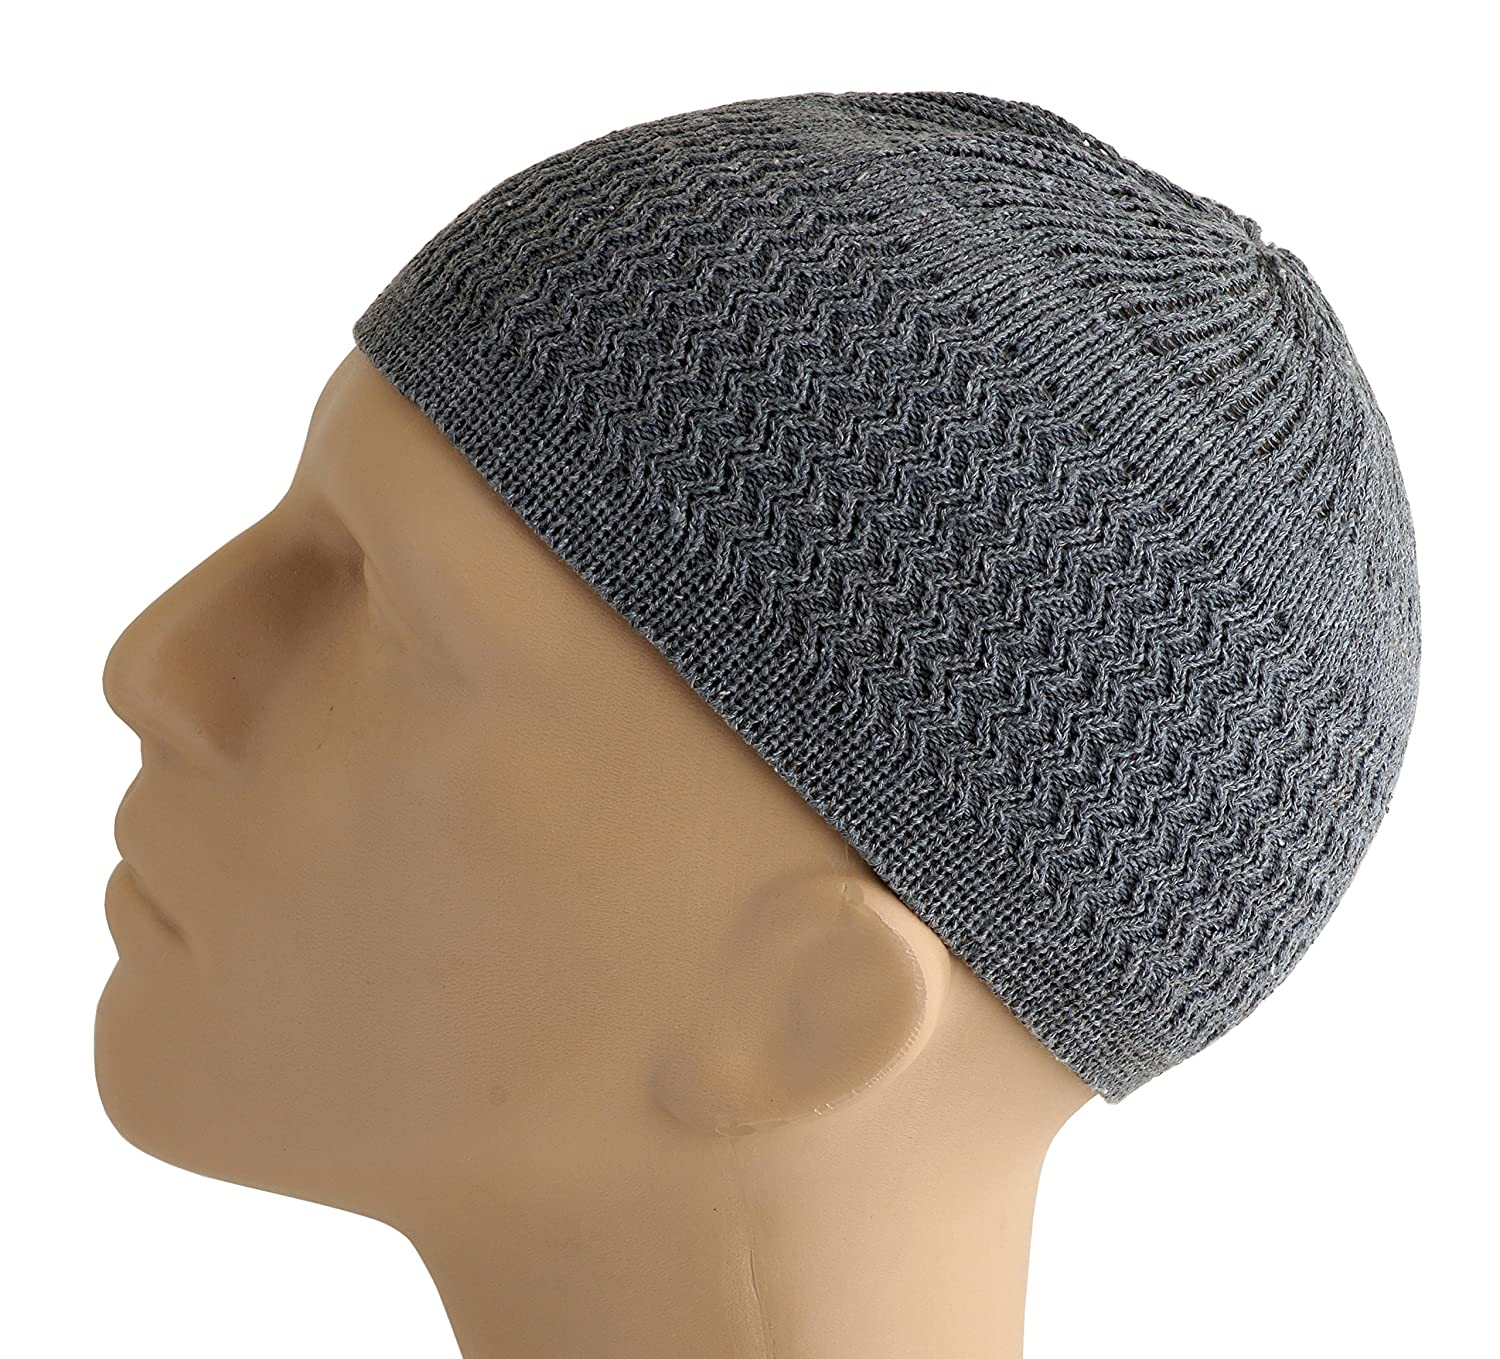 Candid Signature Apparel Zigzag Threaded Skull Cap Chemo Kufi Beanie Hat  for Men Women Bikers (Beige) at Amazon Men s Clothing store  b7b0a5024a1e